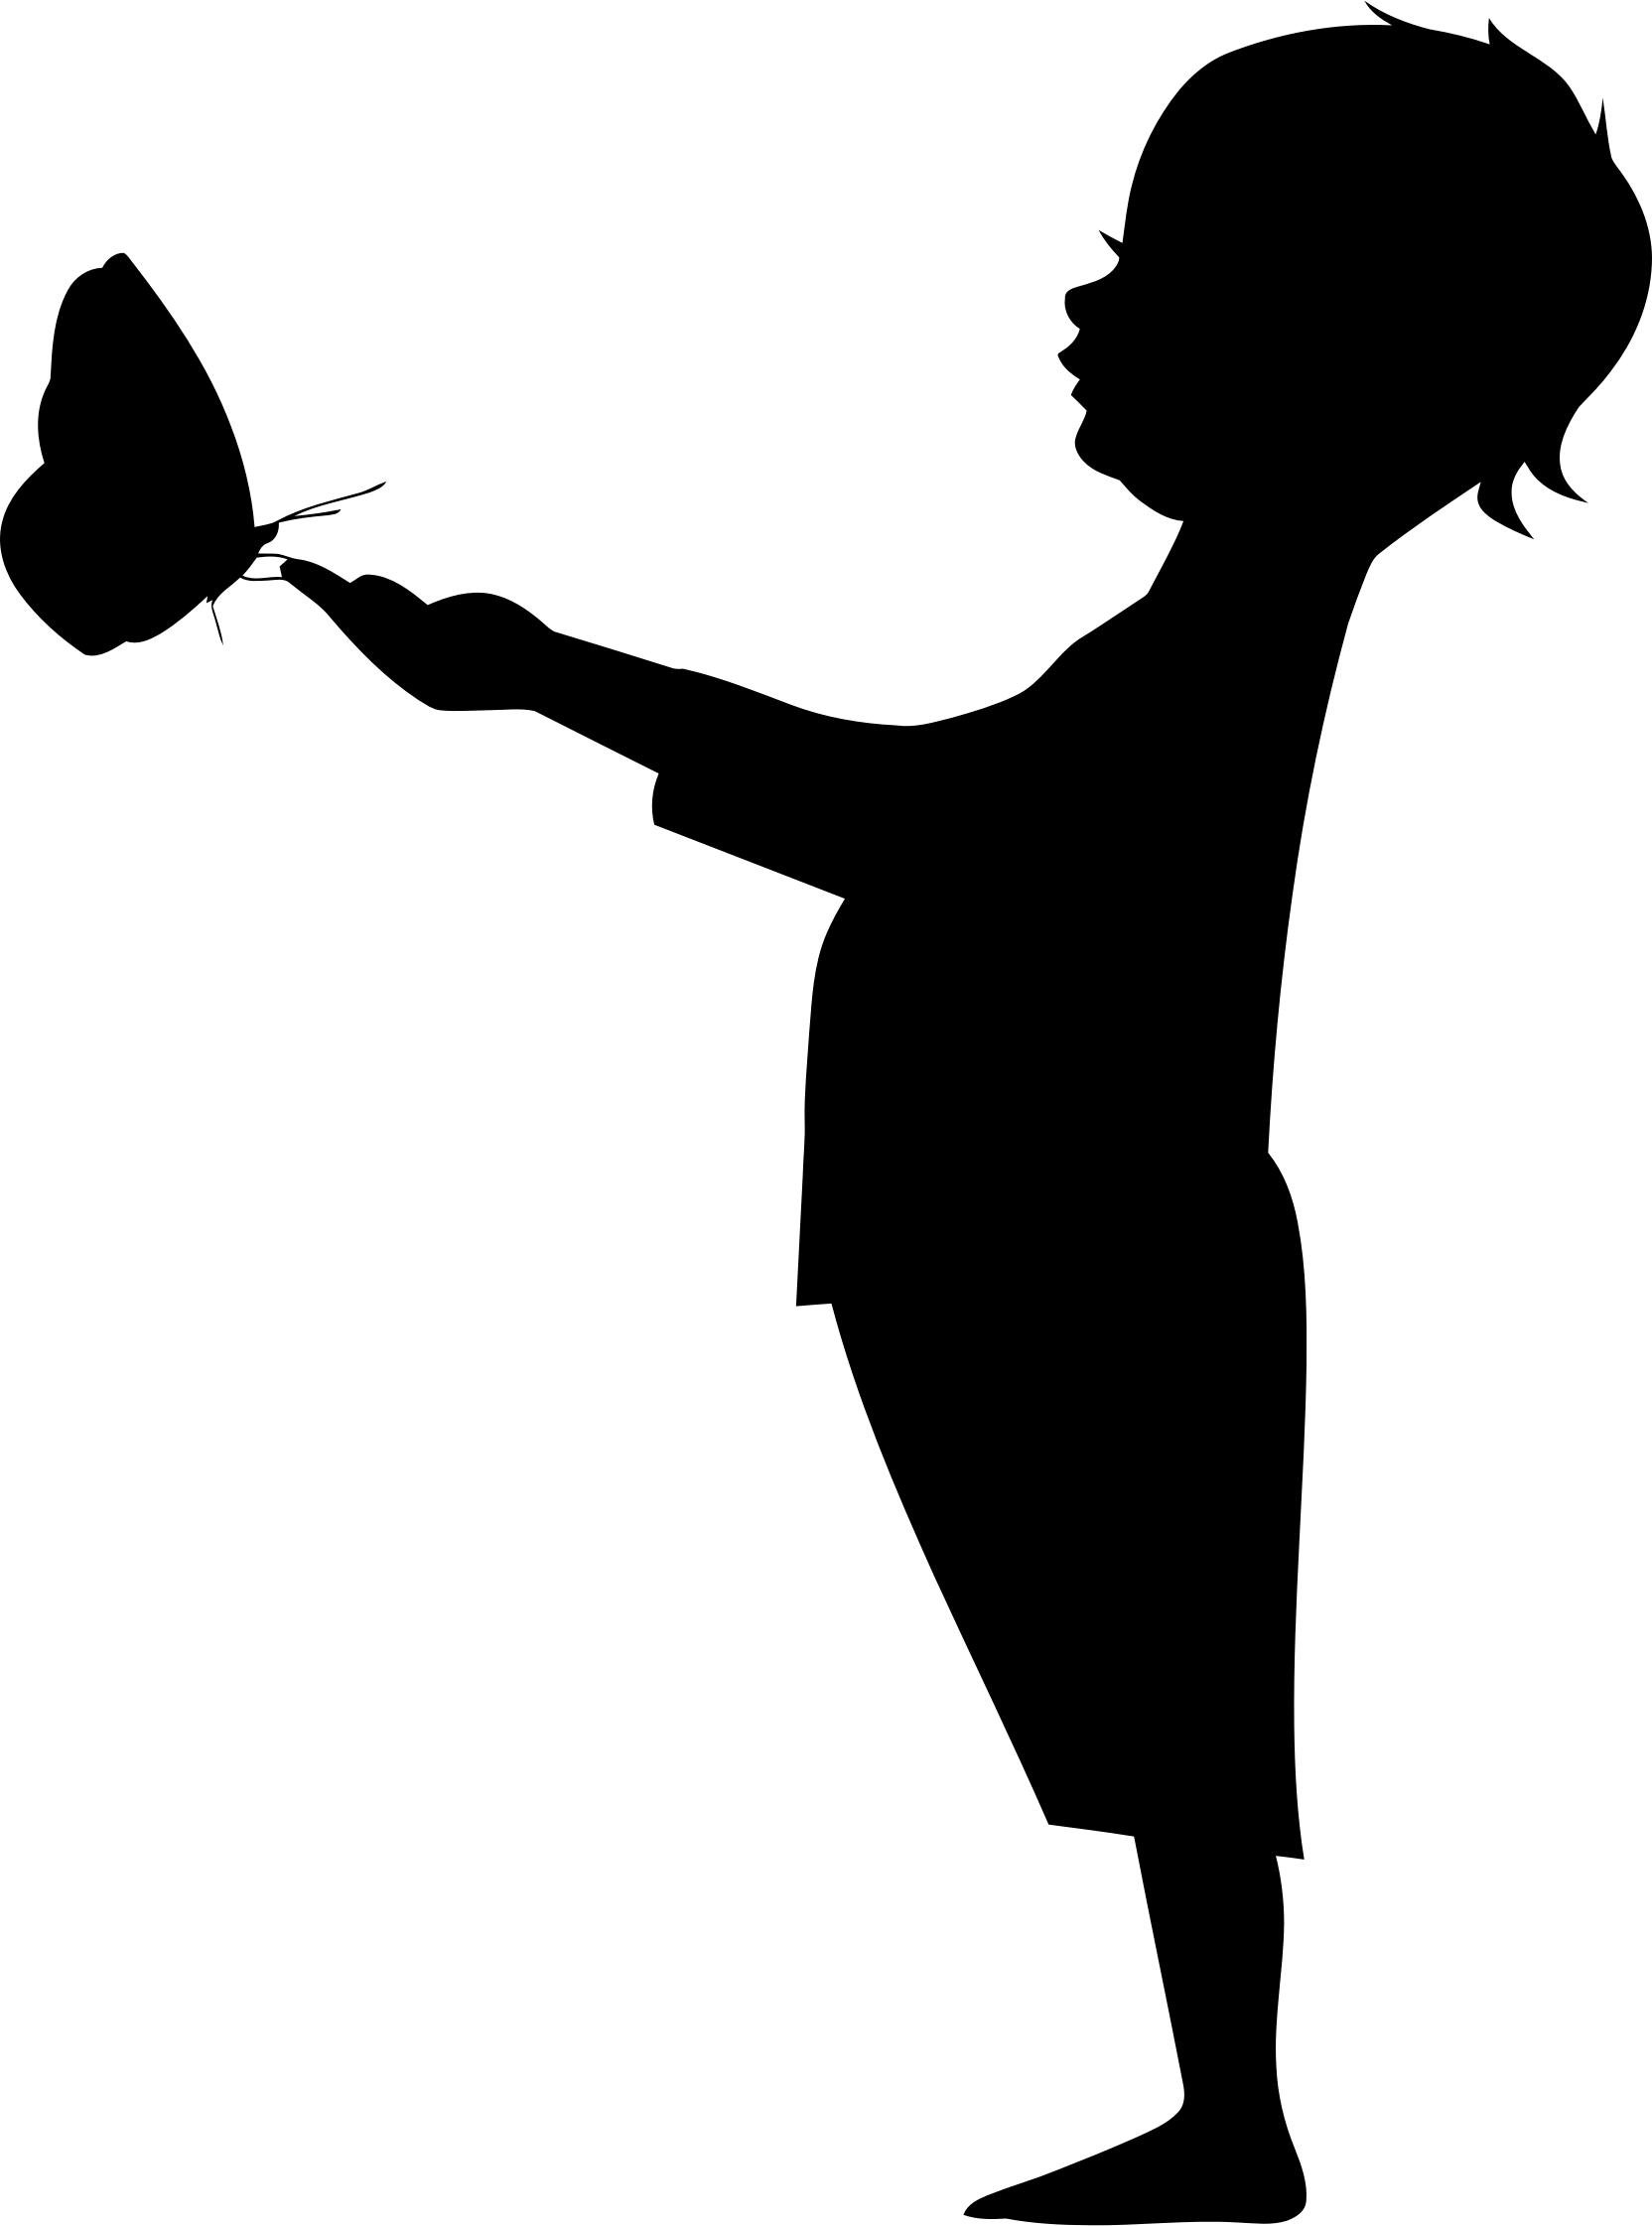 1664x2242 Child Holding Butterfly Silhouette Icons Png